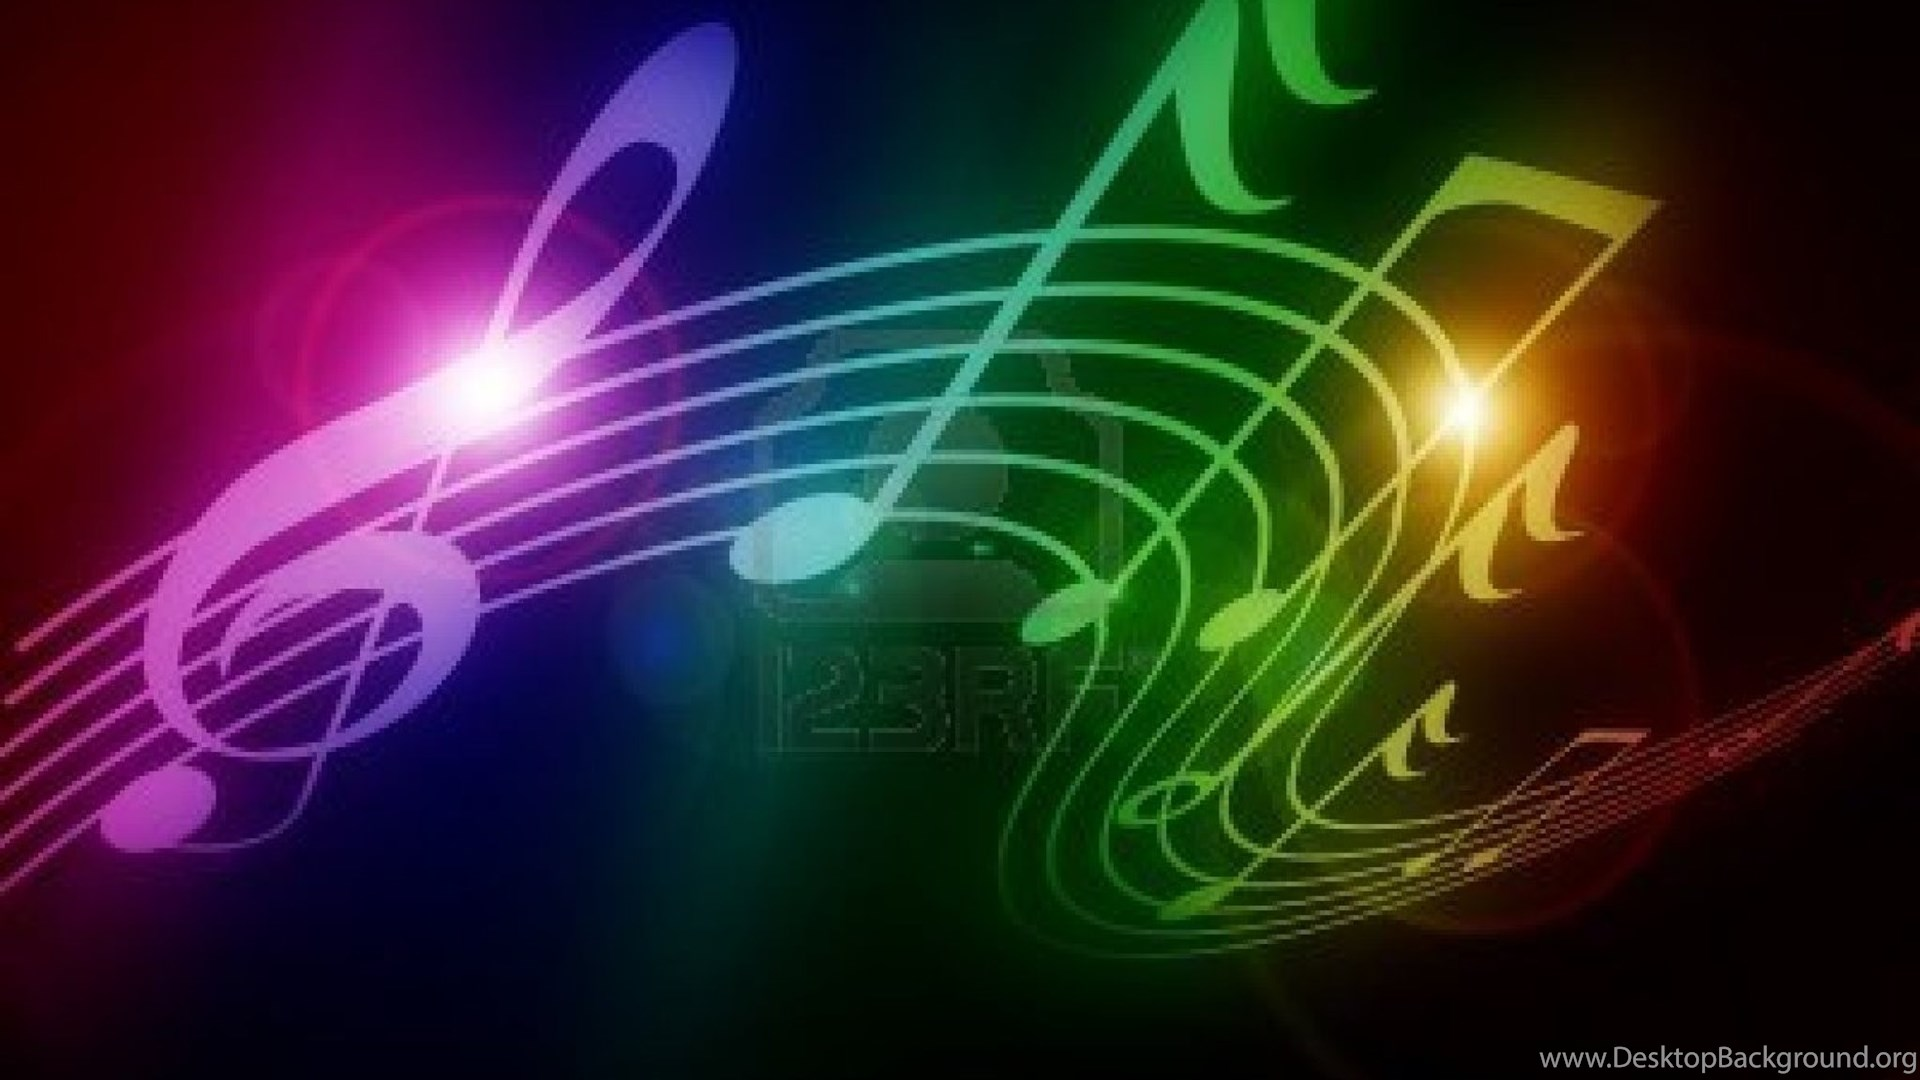 Hd Wallpapers 1080p Music: Colorful Music Notes 13 1080p Hd Wallpapers Desktop Background